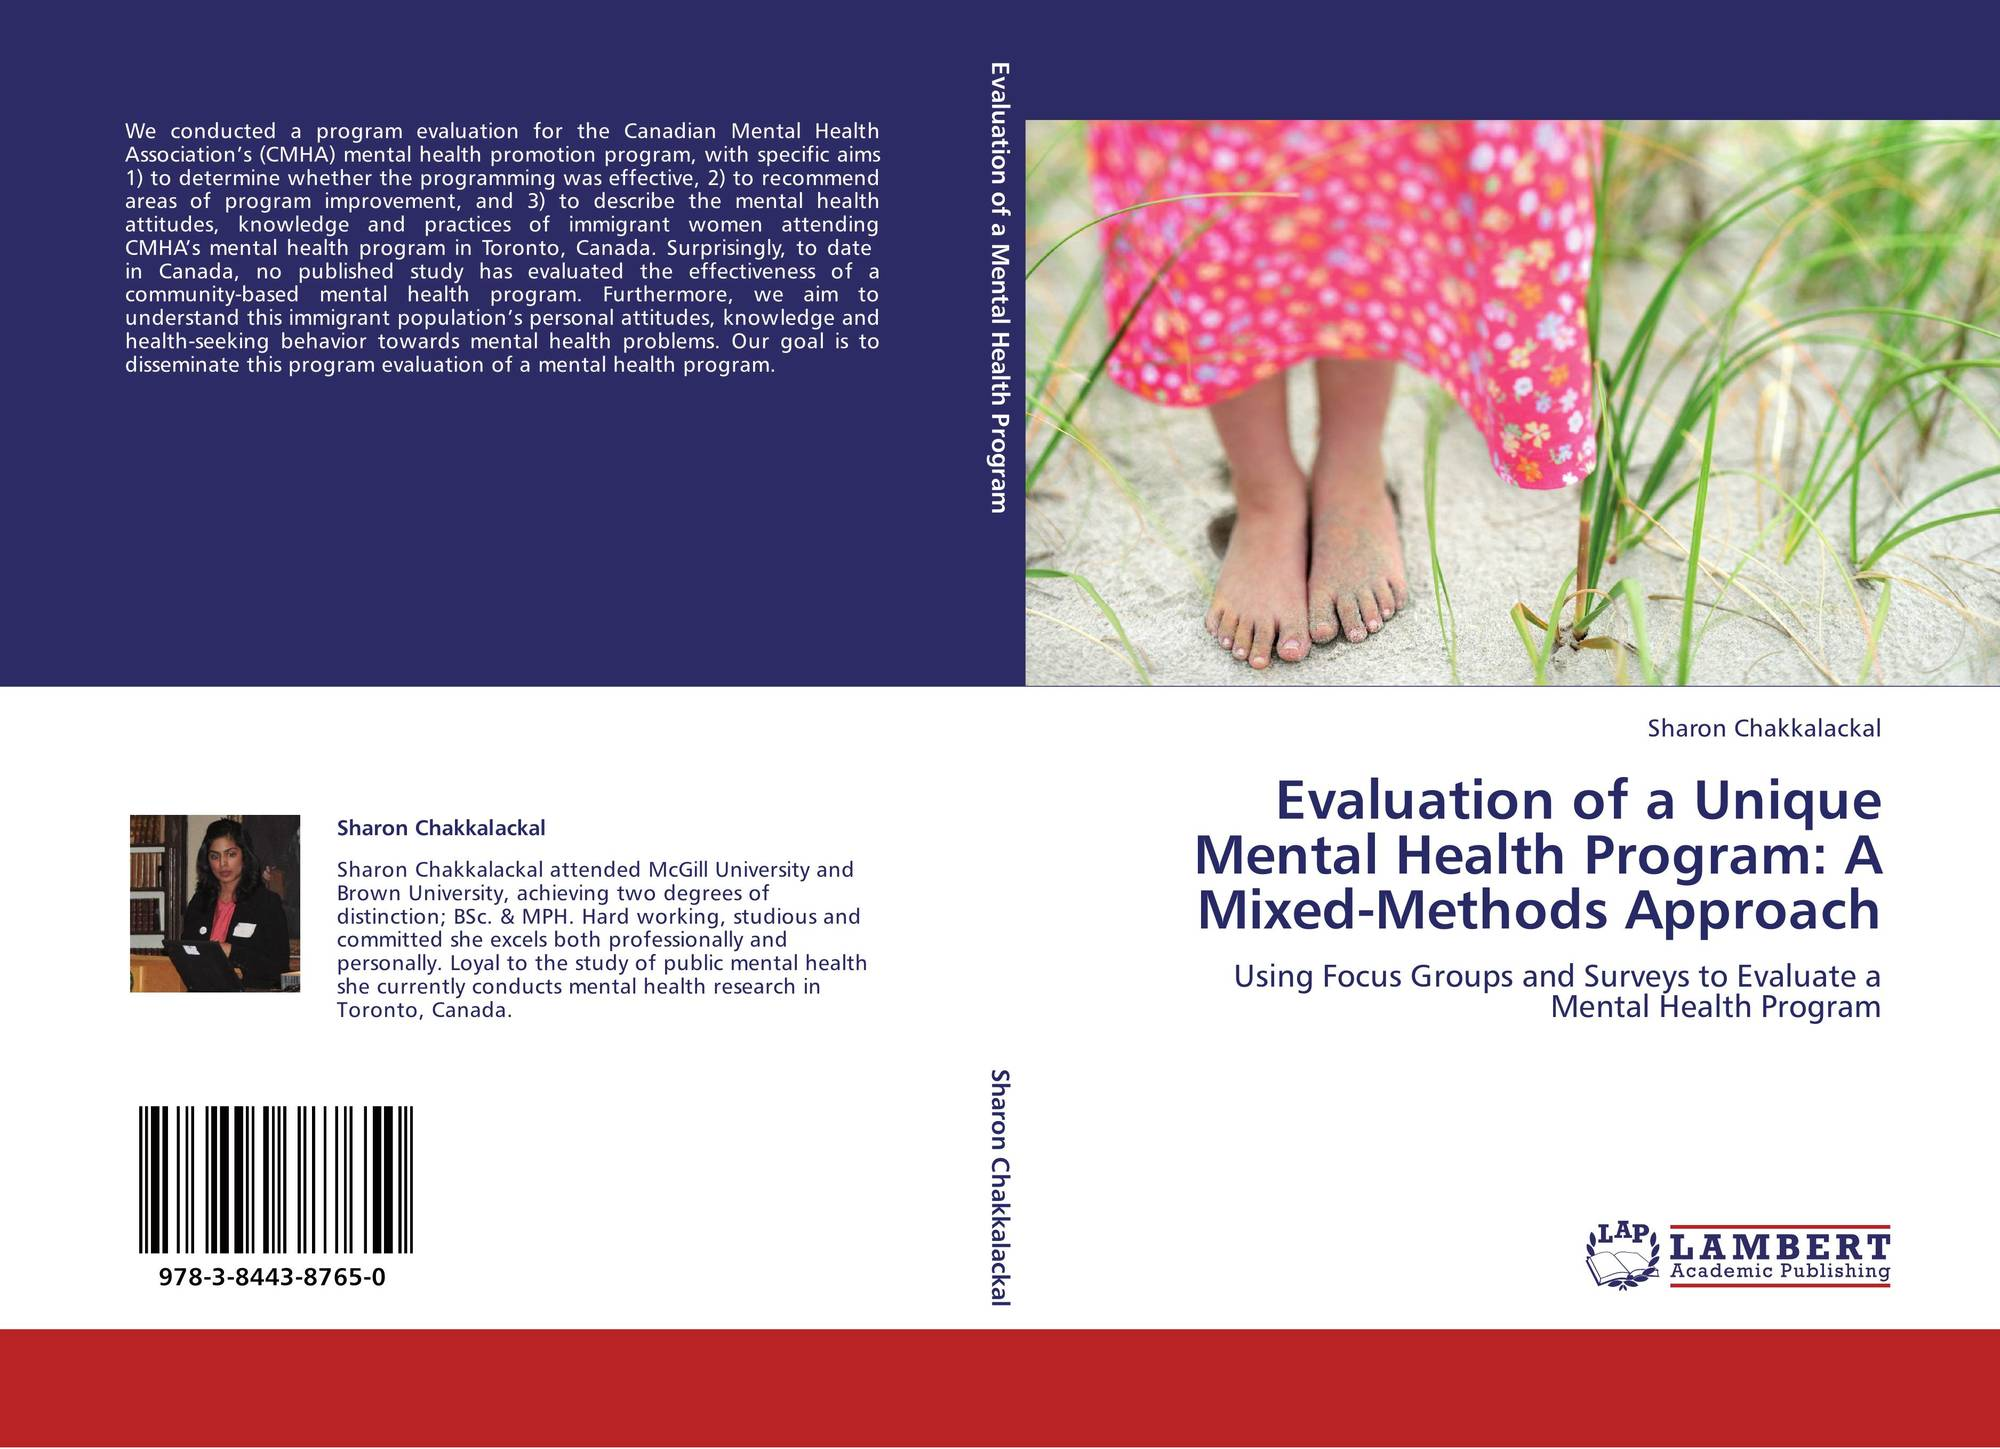 Evaluation Of A Unique Mental Health Program A Mixed Methods Approach 978 3 8443 8765 0 384438765x 9783844387650 By Sharon Chakkalackal